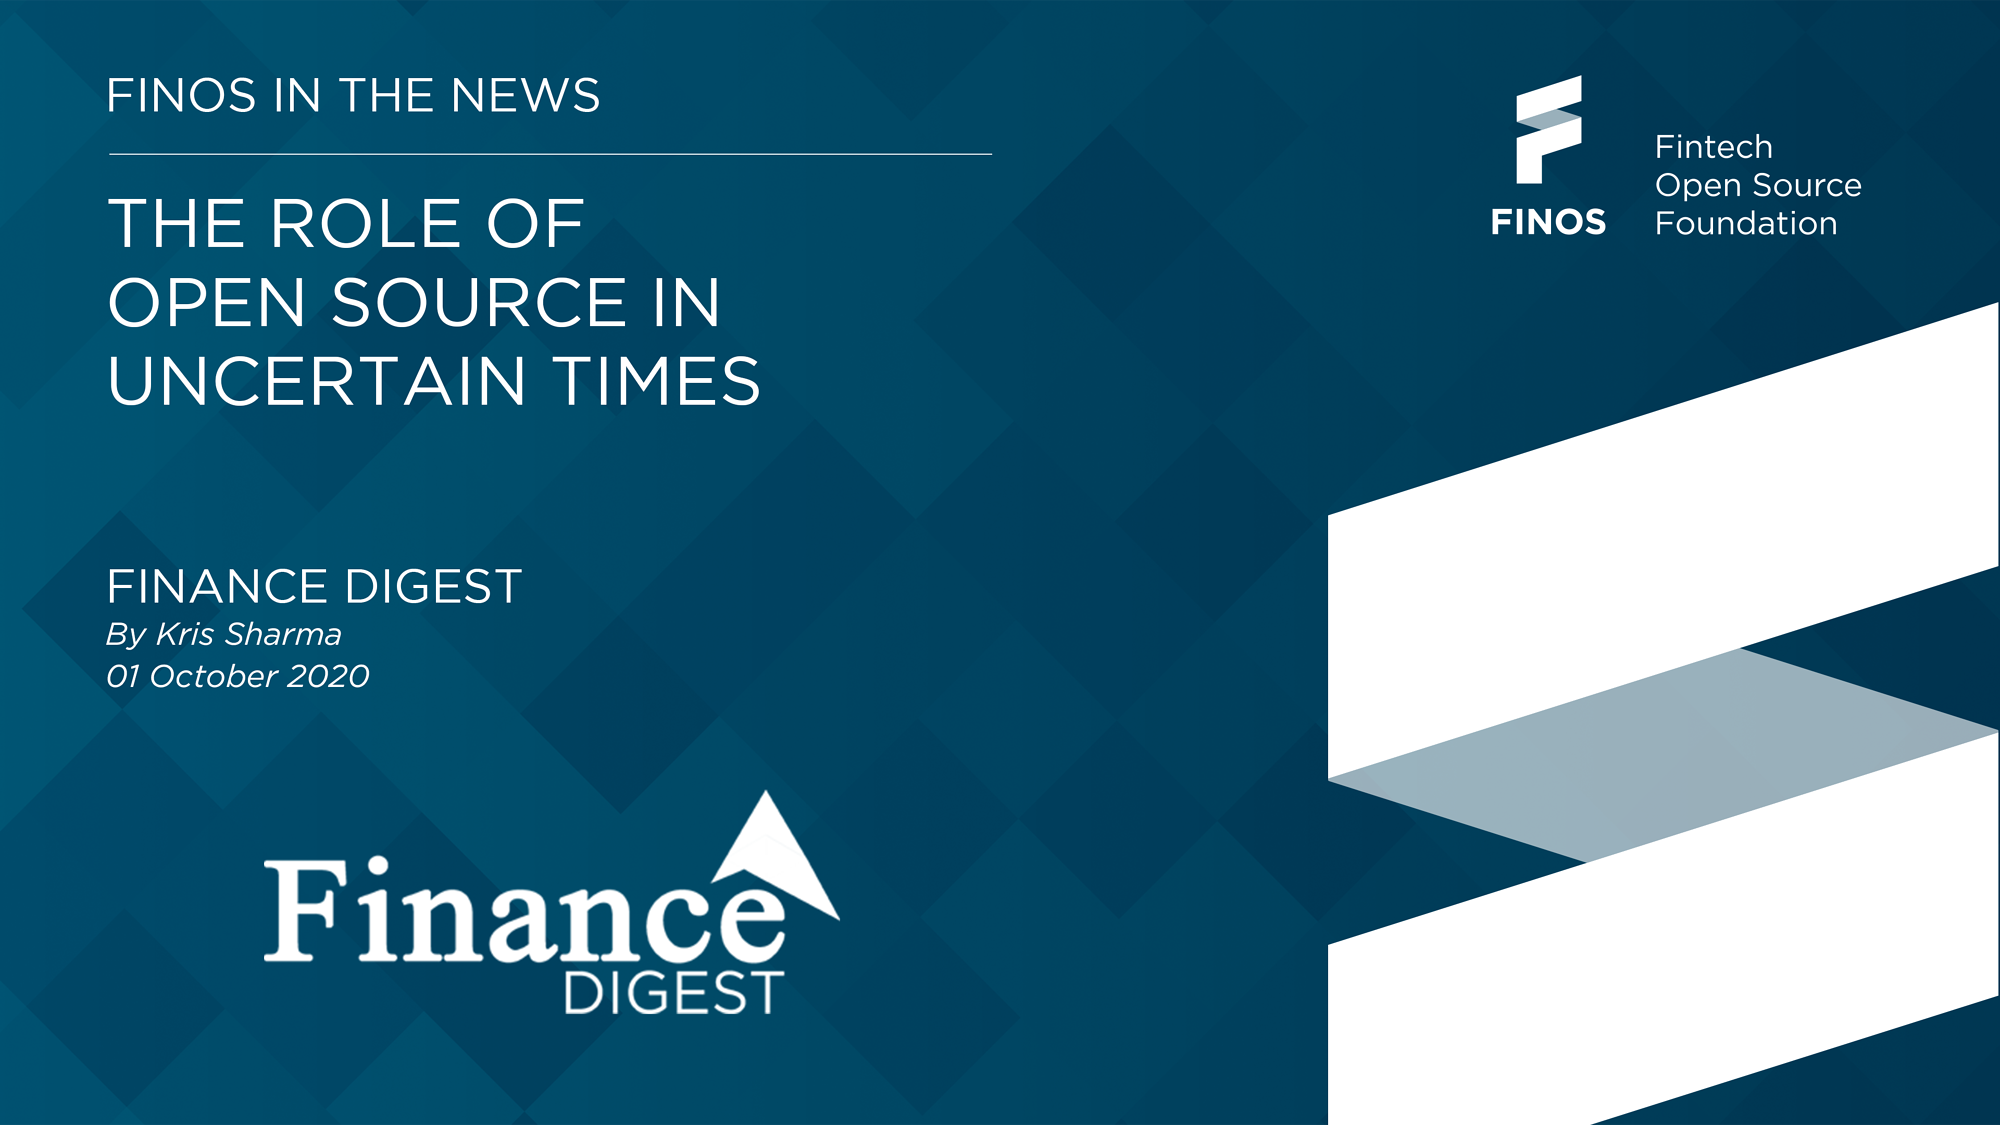 FINOS-in-the-news-finance-digest-oct-20